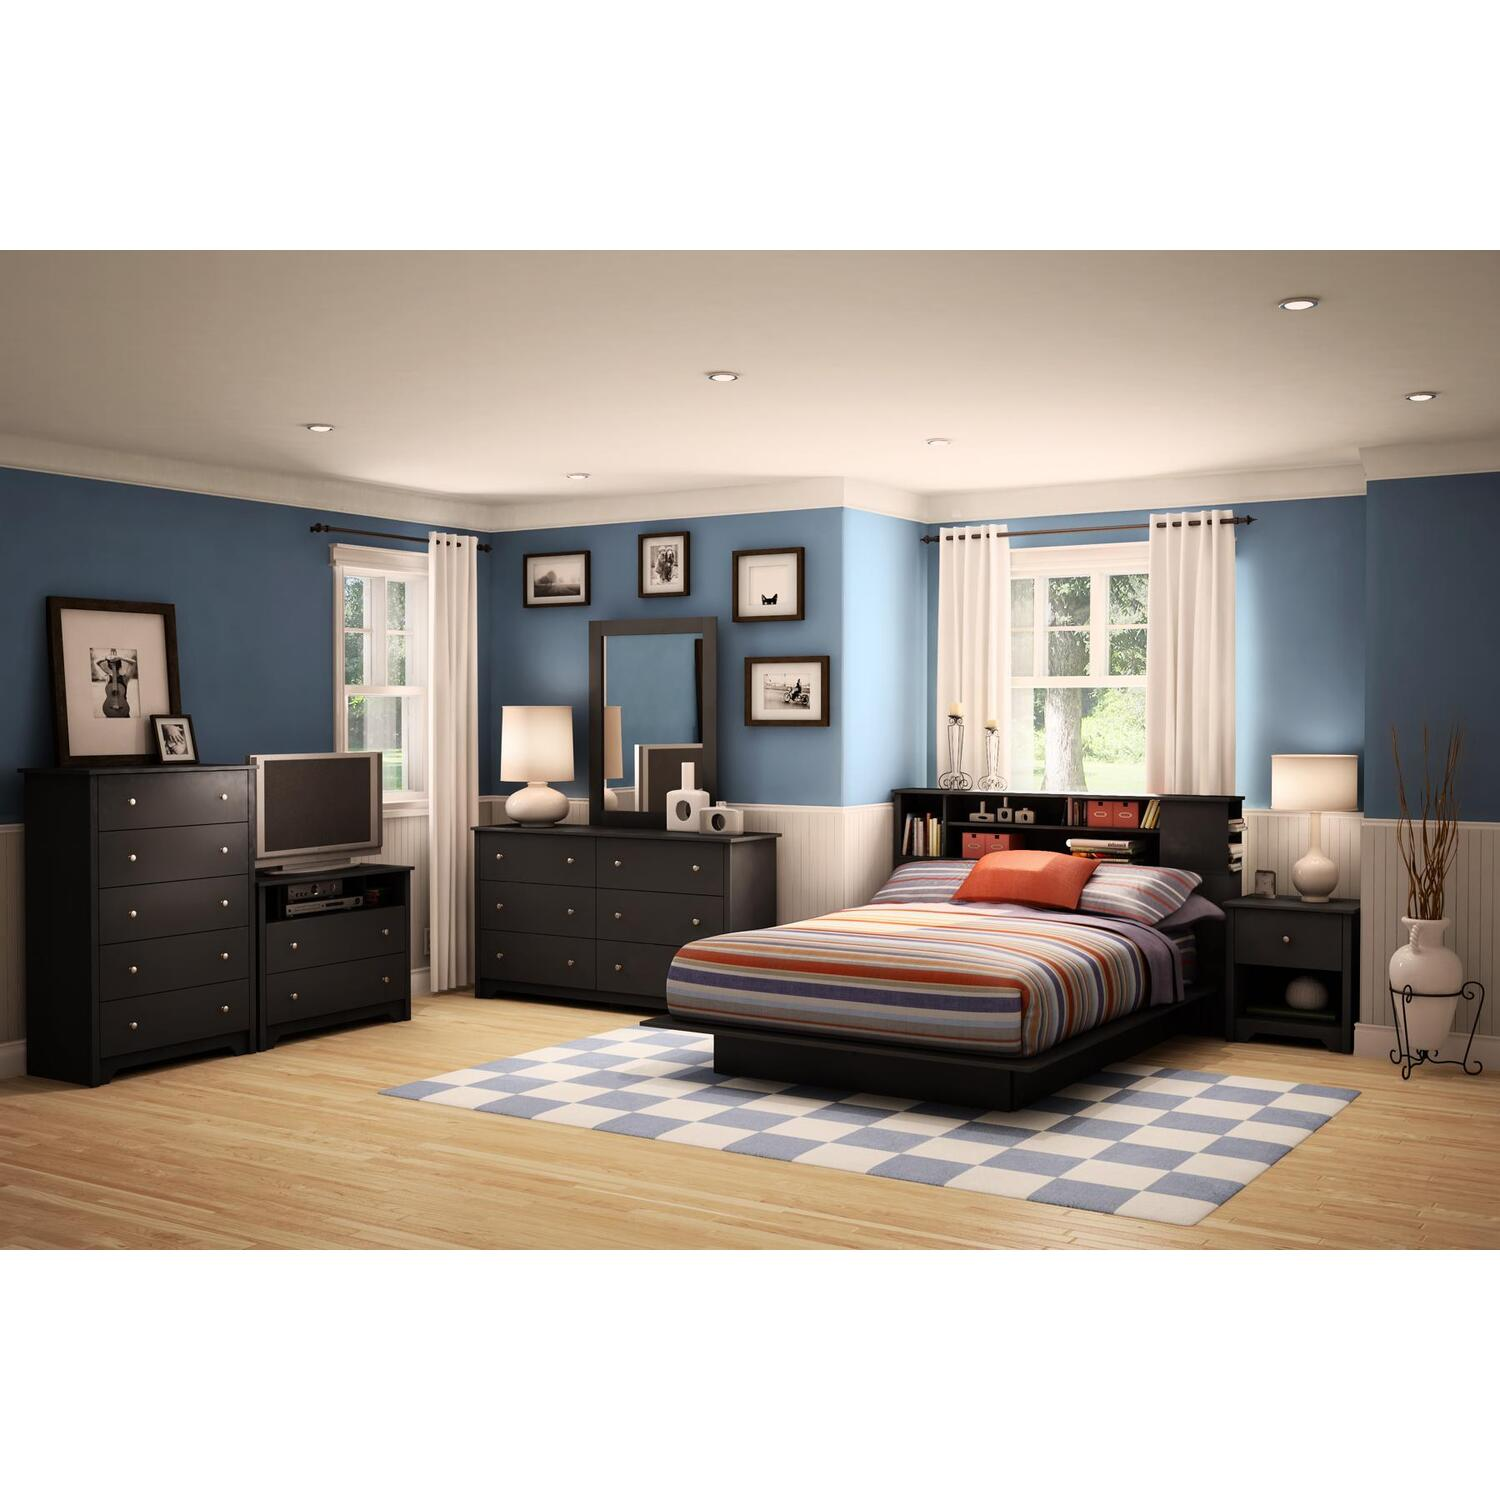 south shore vito queen bed 7 piece bedroom set by oj commerce3170q7pc2